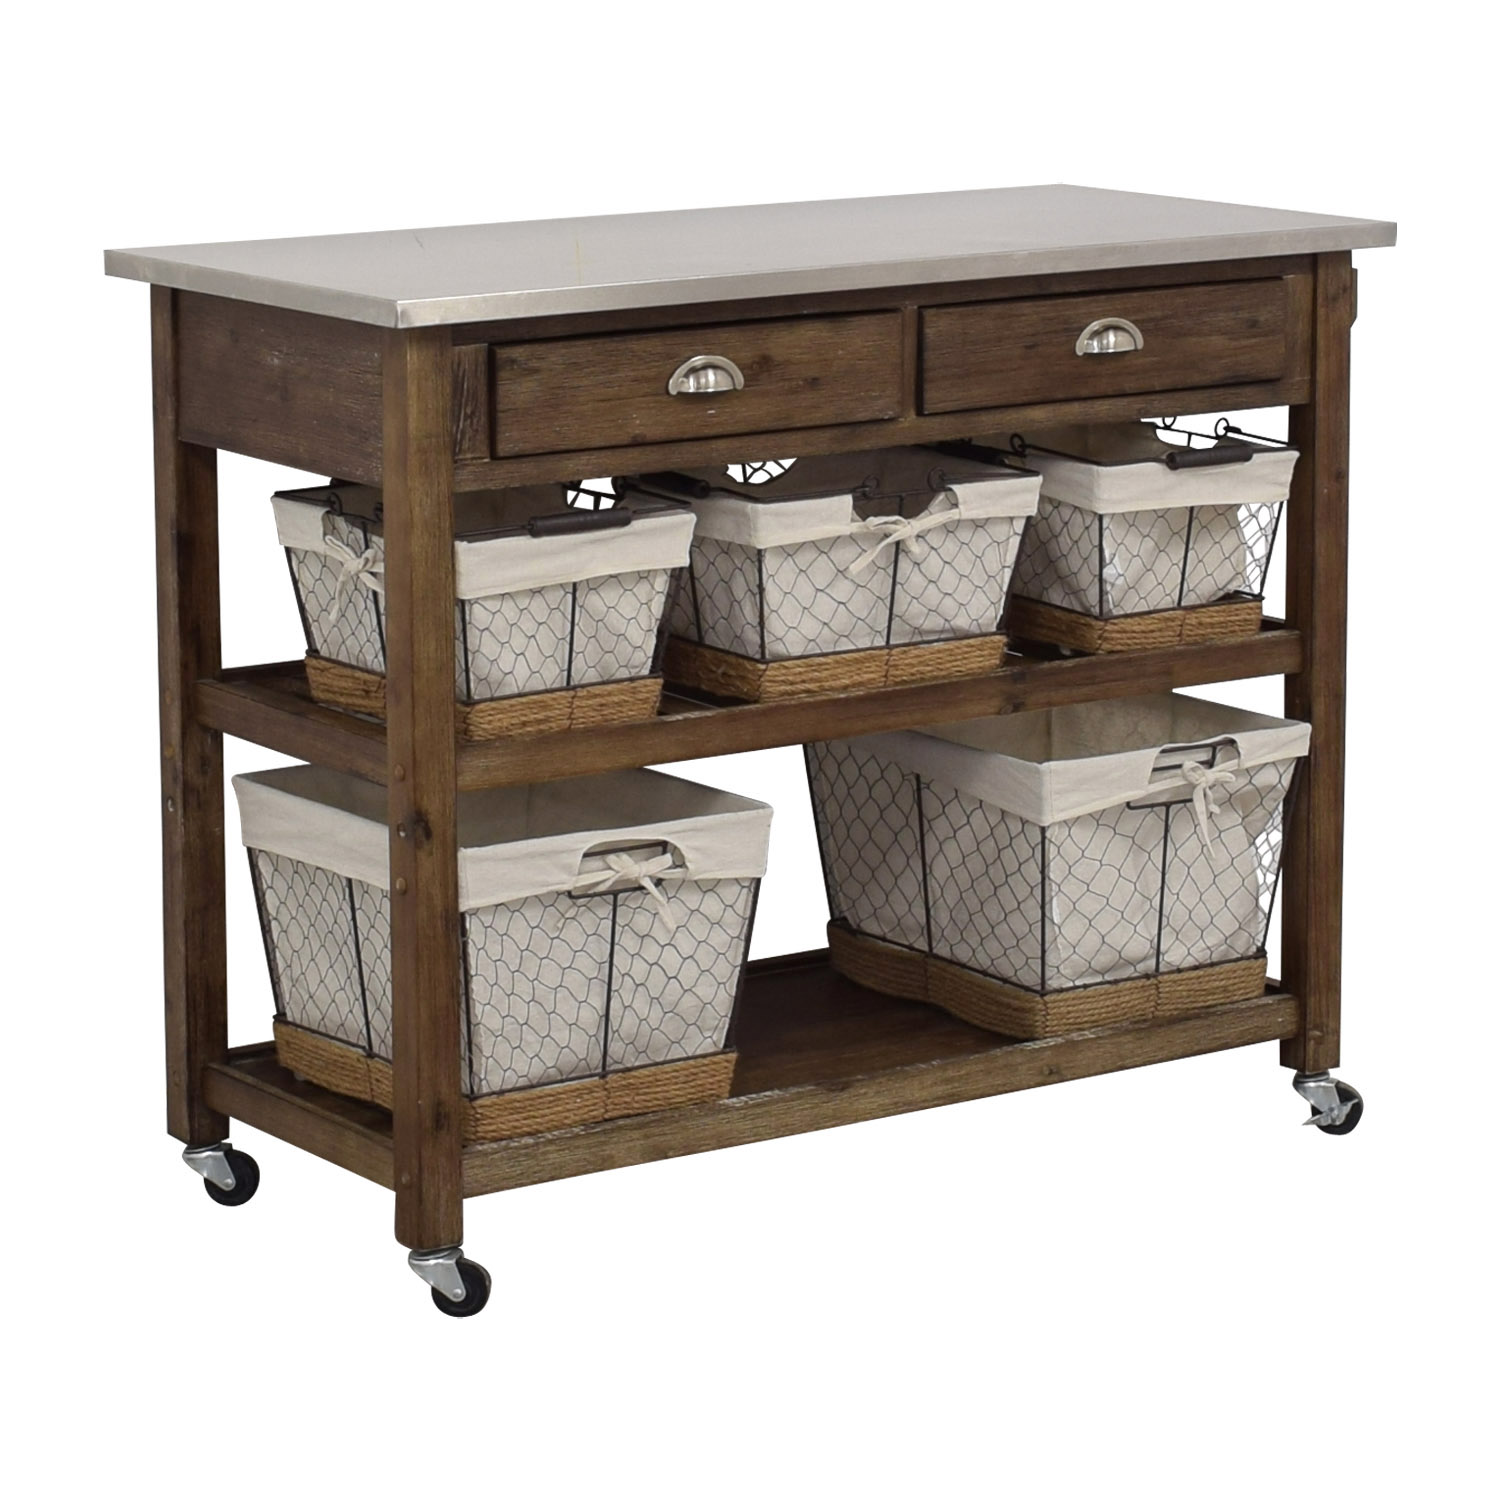 Home Styles Home Styles Two-Drawer Utility Cart with Steel Top and Five Wire Baskets discount